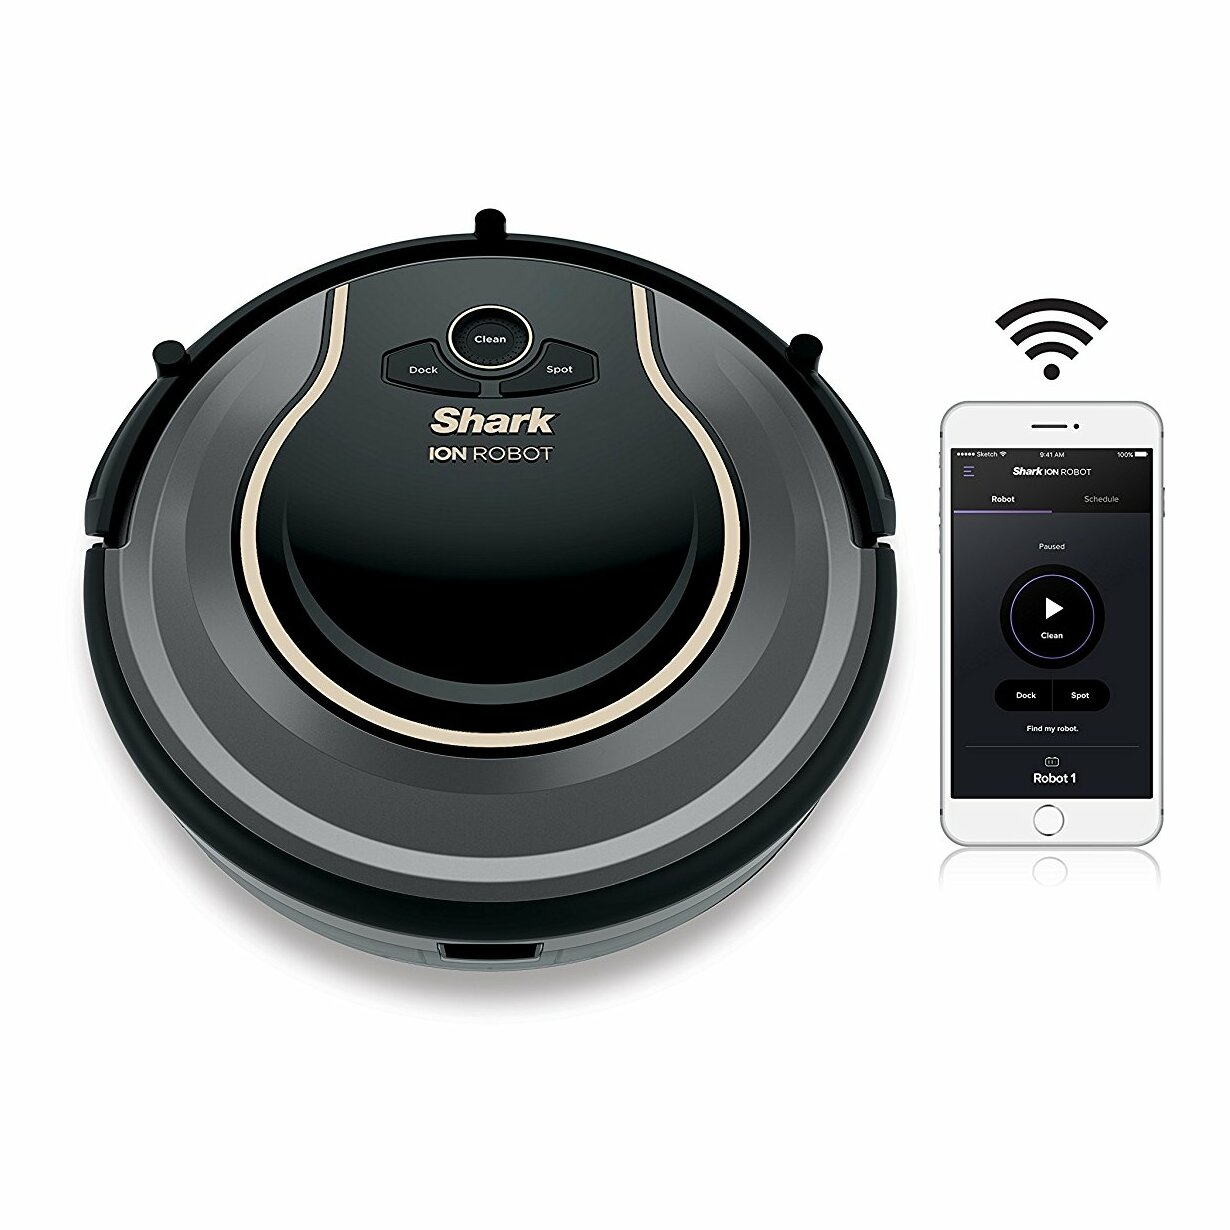 Shark Ion Robot 750 Connected Robotic Vacuum & Reviews | Wayfair on kitchen drain rough in, door rough in, tub rough in, kitchen rough in dimensions, kitchen island rough in, fireplace rough in, home rough in, kitchen cabinets rough in, electrical rough in, basement rough in, shower rough in, bath rough in, water heater rough in, kitchen drain pipe diagram, bathroom vanity rough in, kitchen range rough in, bathroom lavatory rough in, washing machine rough in, window rough in, urinal rough in,